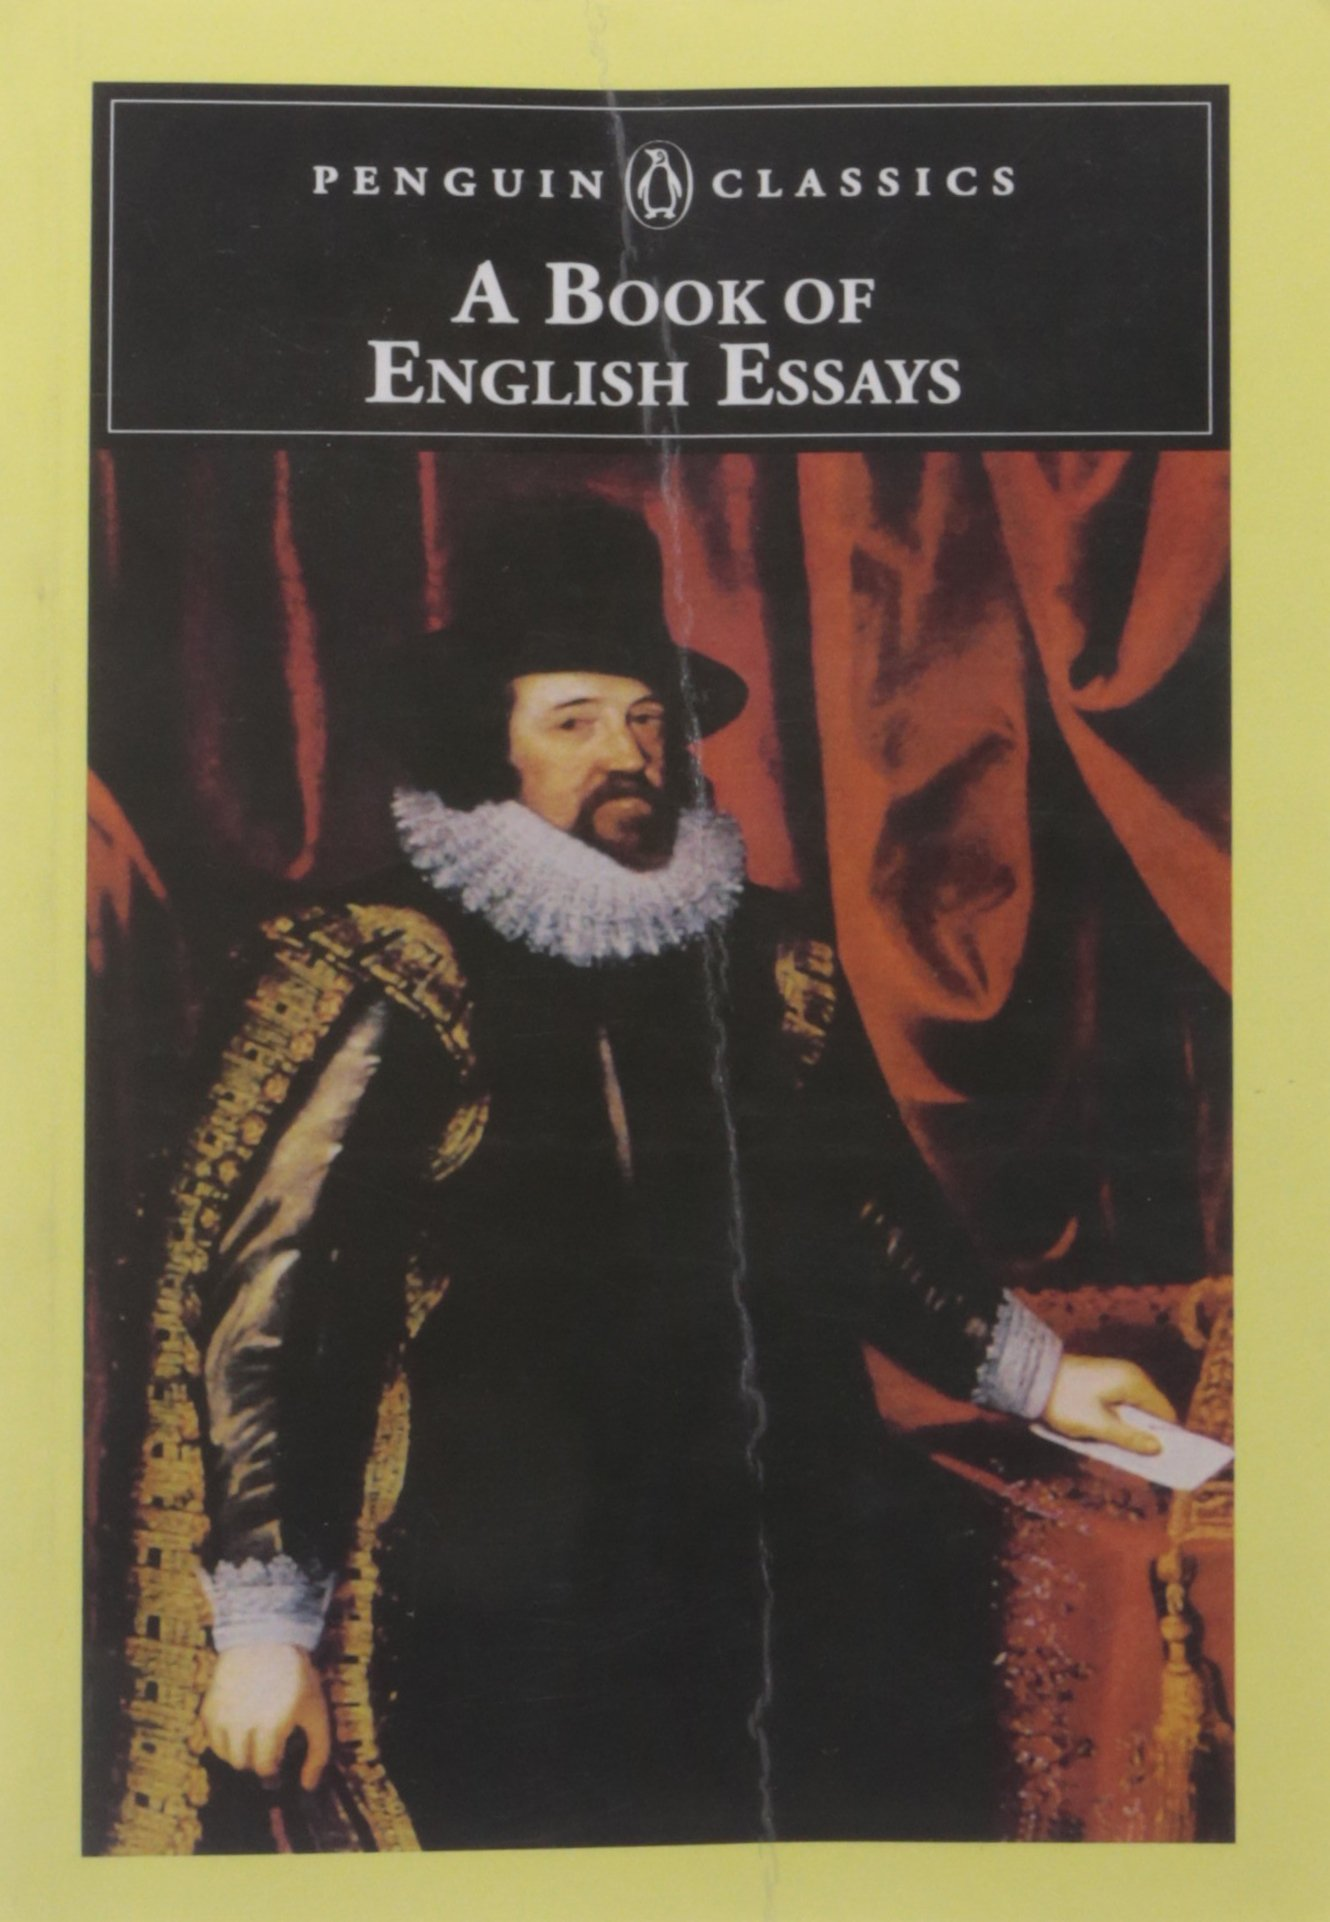 a book of english essays co uk w e williams a book of english essays co uk w e williams 9780140431537 books